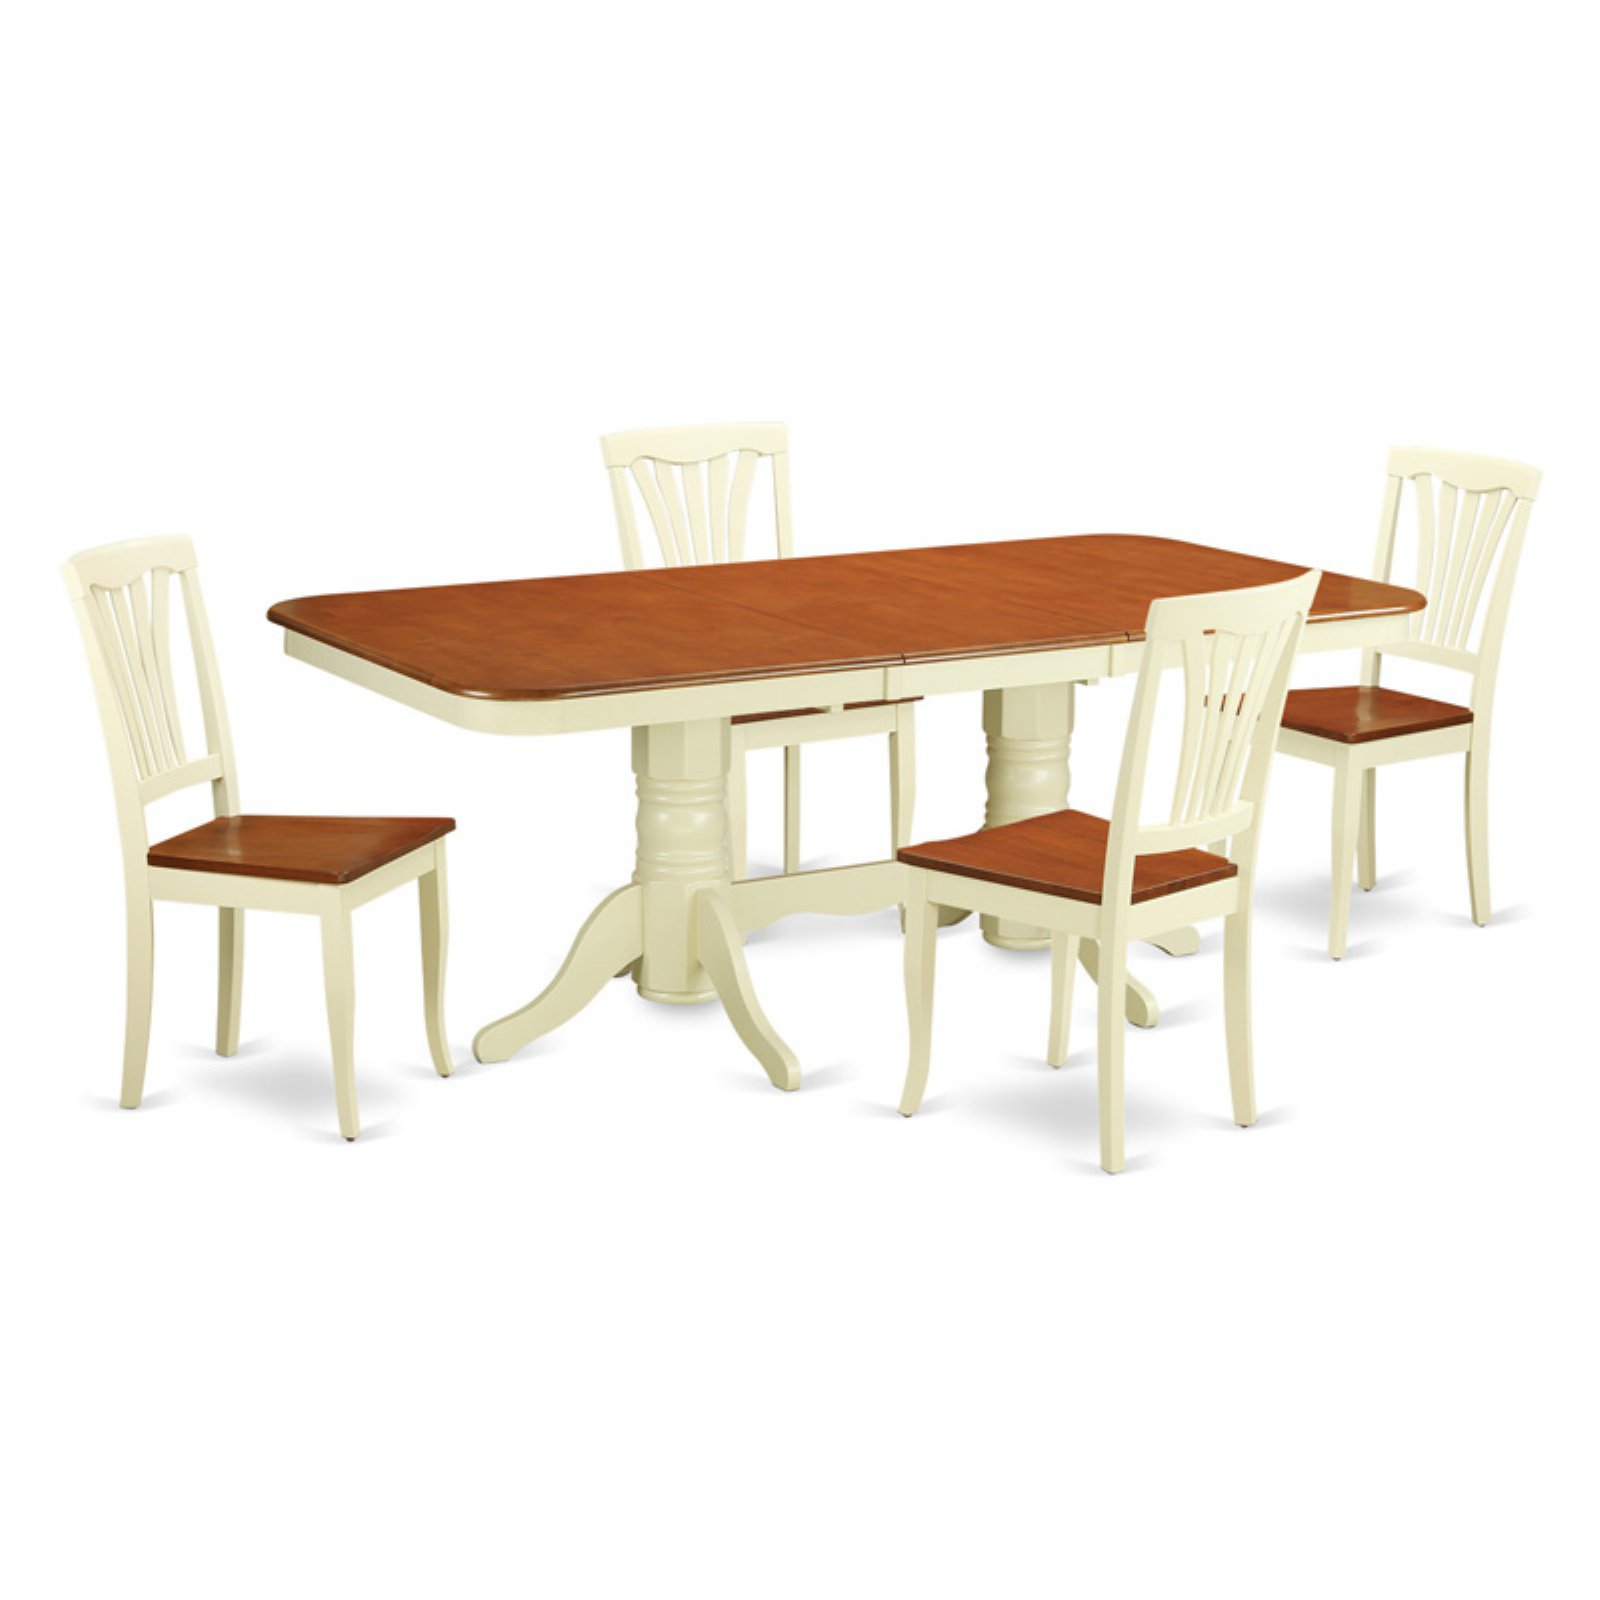 East West Furniture Kenley 5 Piece Trestle Dining Table Set with Avon Chairs